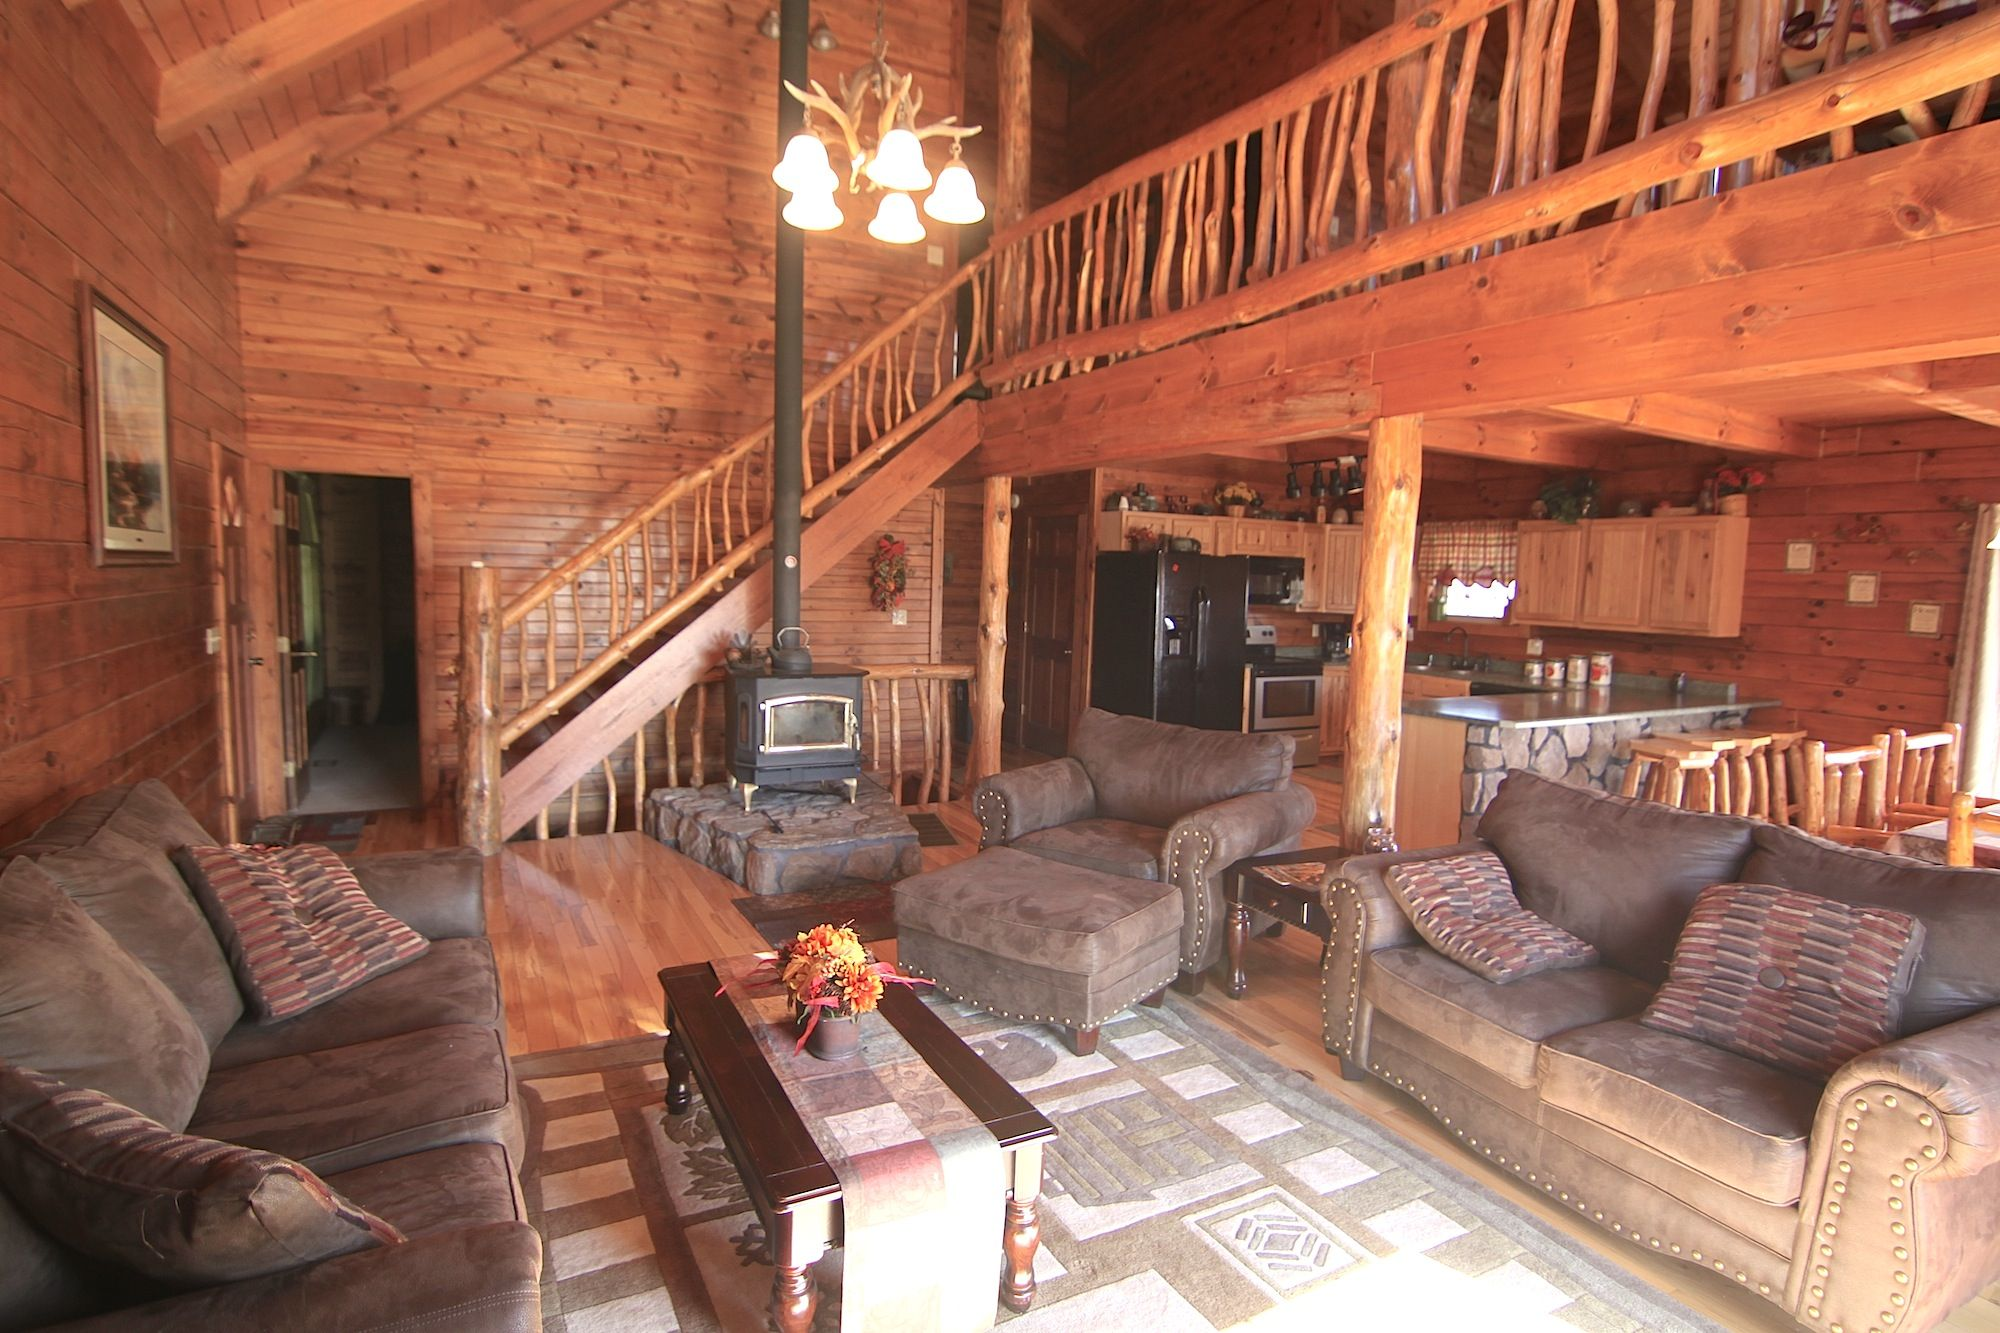 ohio redawning cabins vacation in hocking hills rental romantic cabin a escape property frame getaways logan